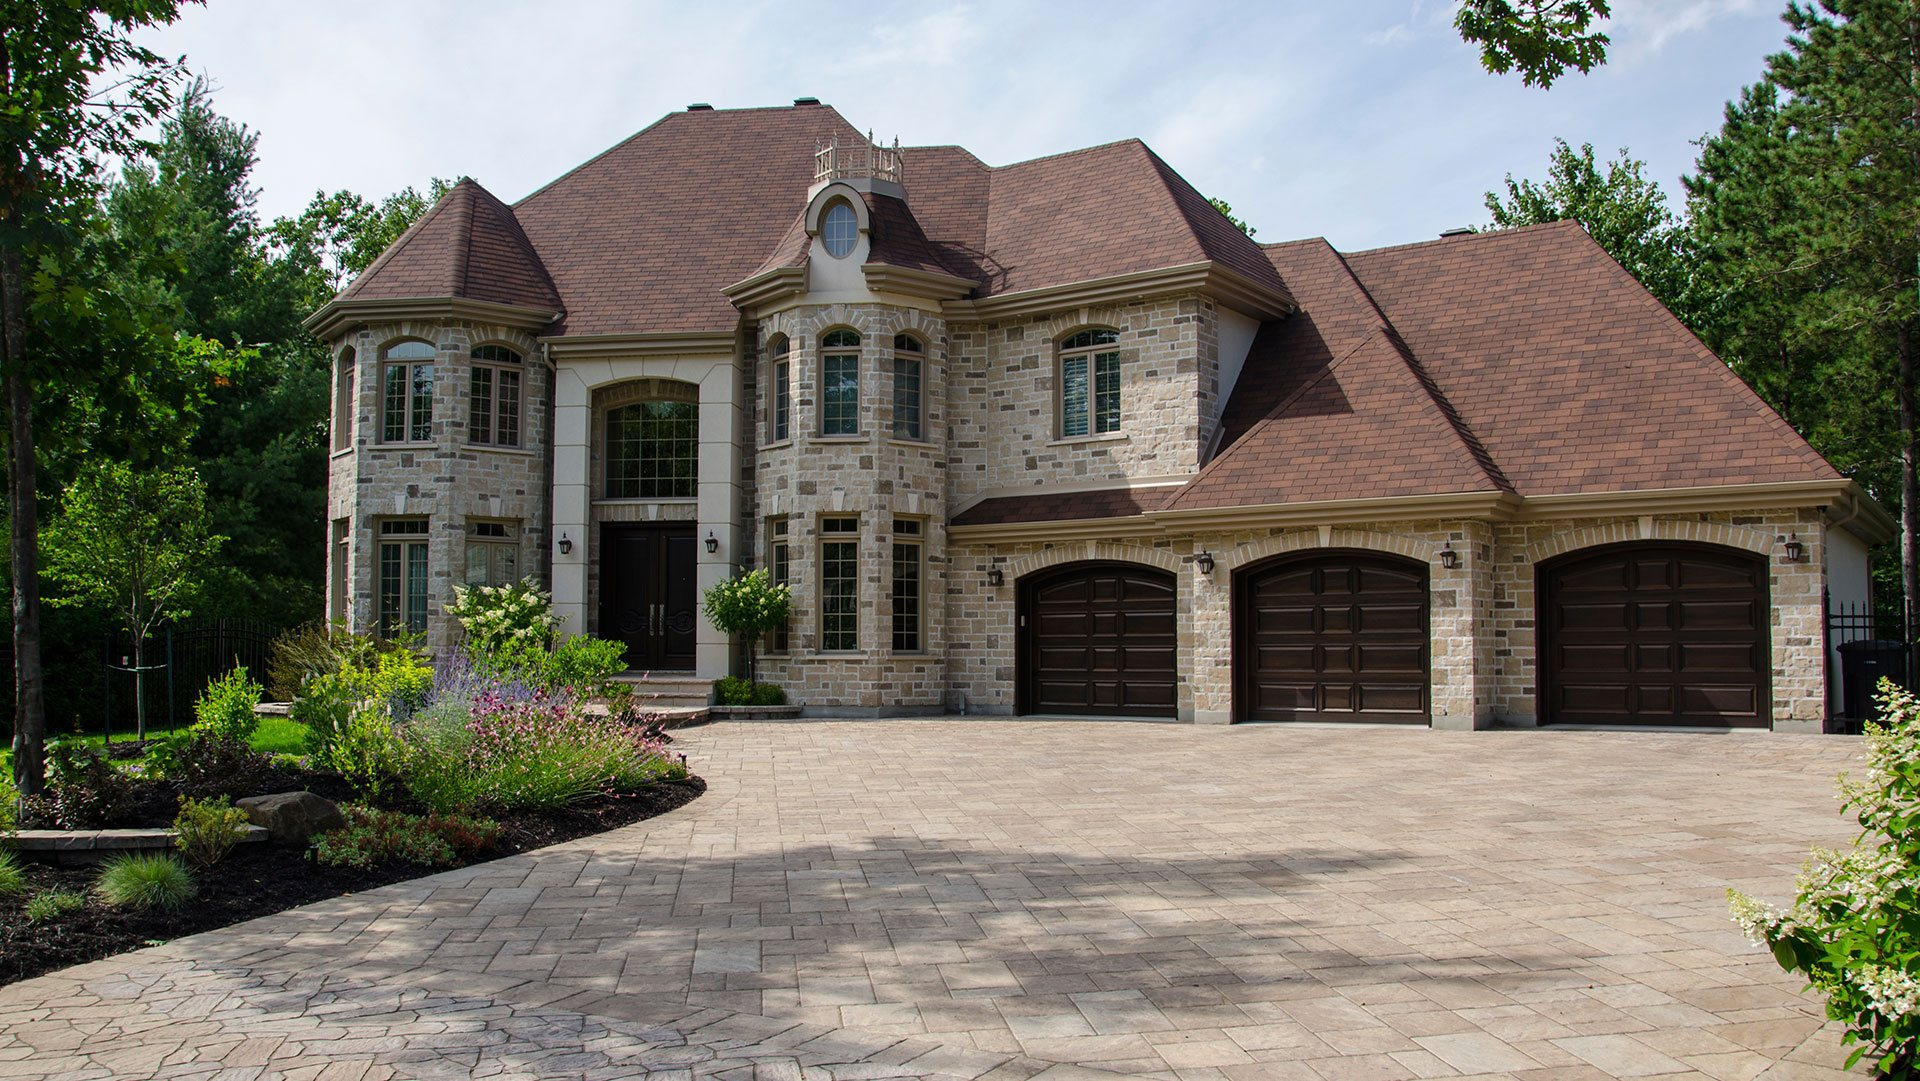 Lawmar Contracting Custom Home Builder, Home Builder and Energy Efficient Home Builder